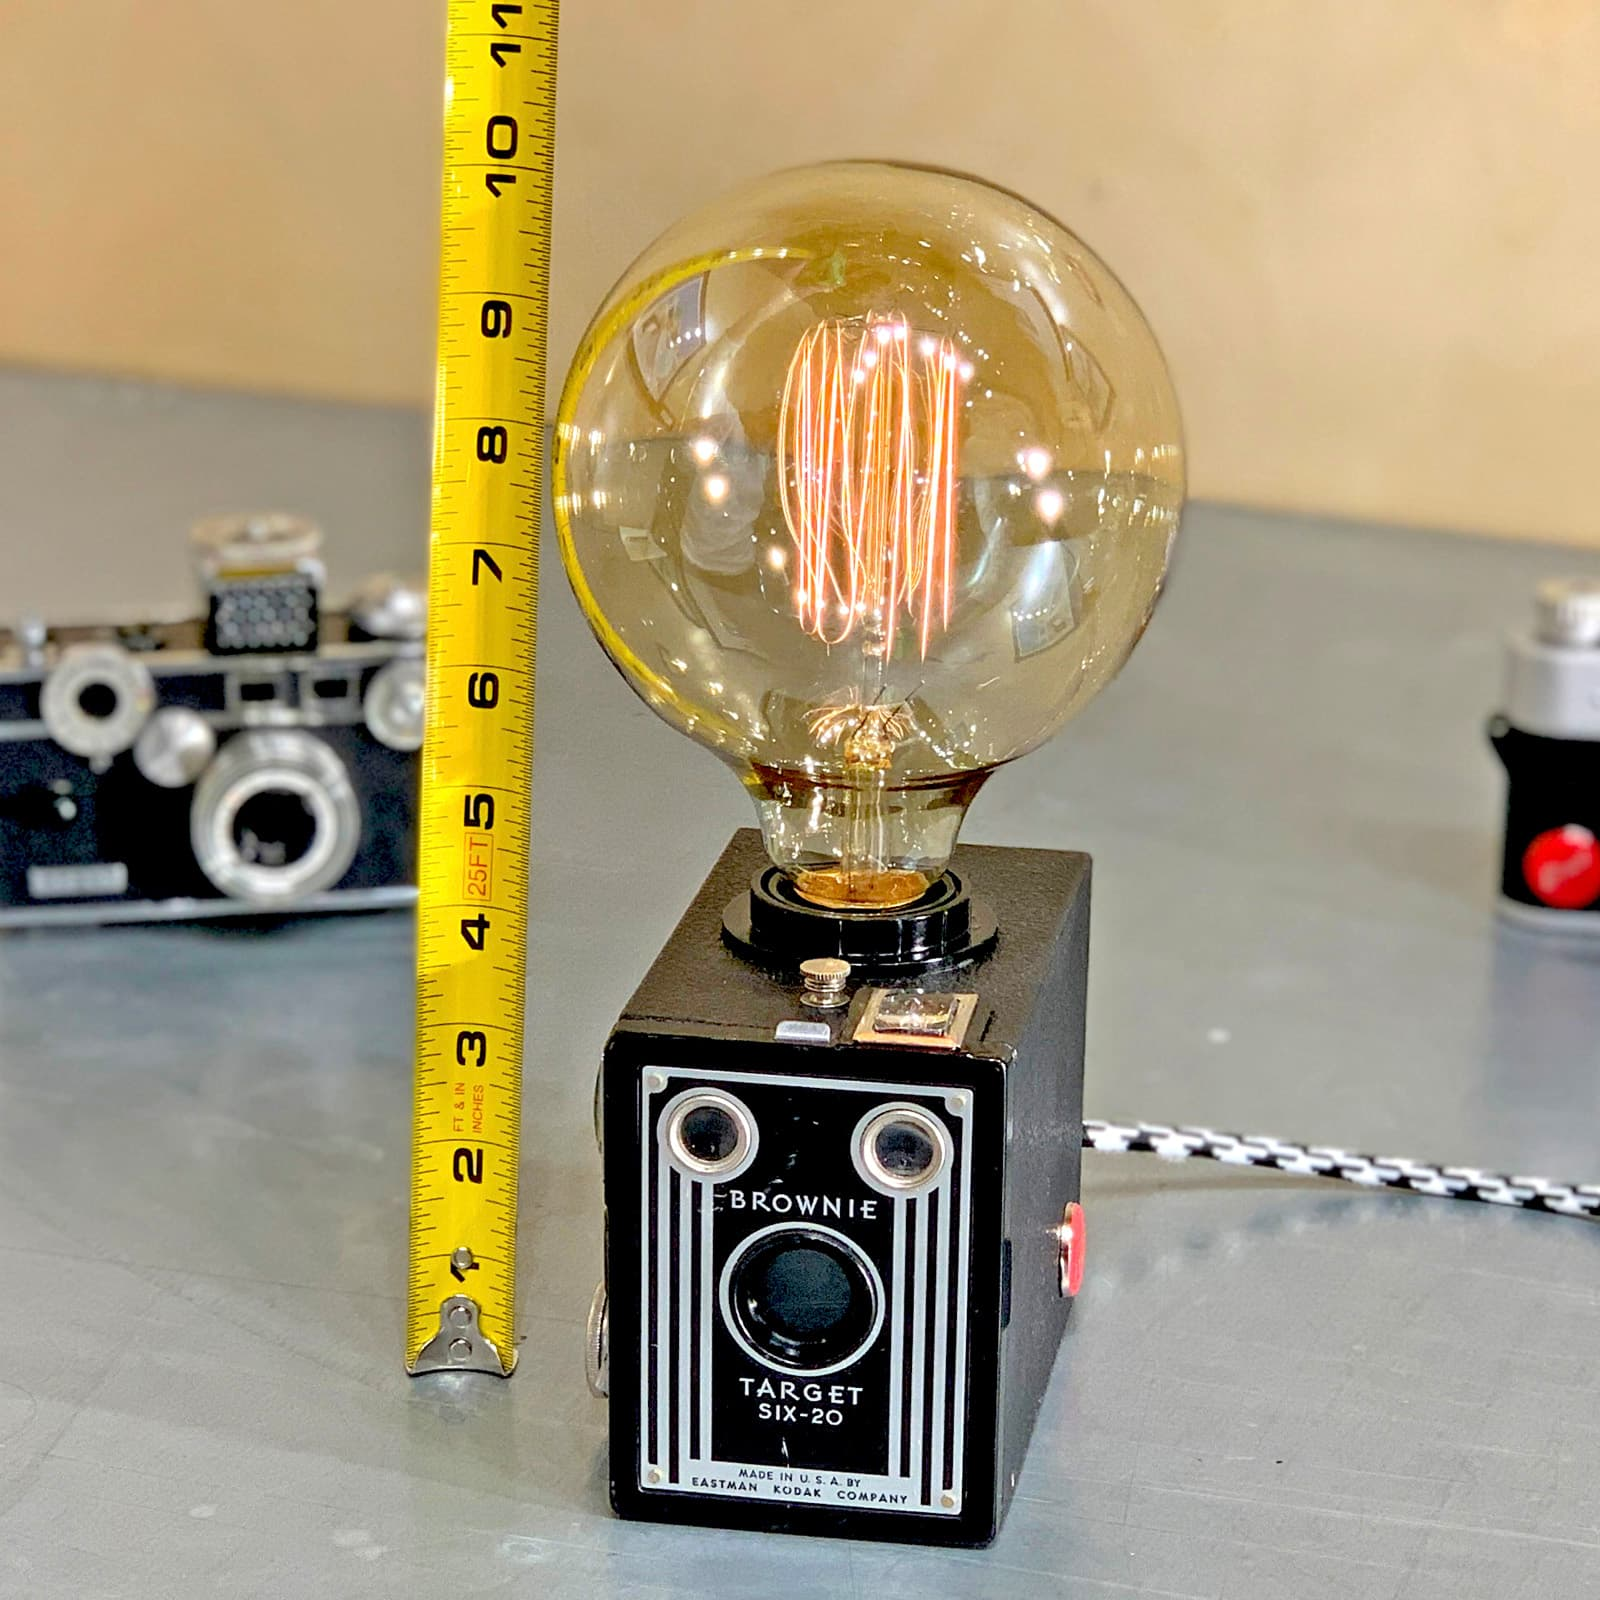 Showing measurements using measuring tape of Rosie's Workshop original vintage camera accent light - the Kodak Brownie Six-20, the original point & shoot camera. All parts are UL component listed (c UR us) for United States and Canada.